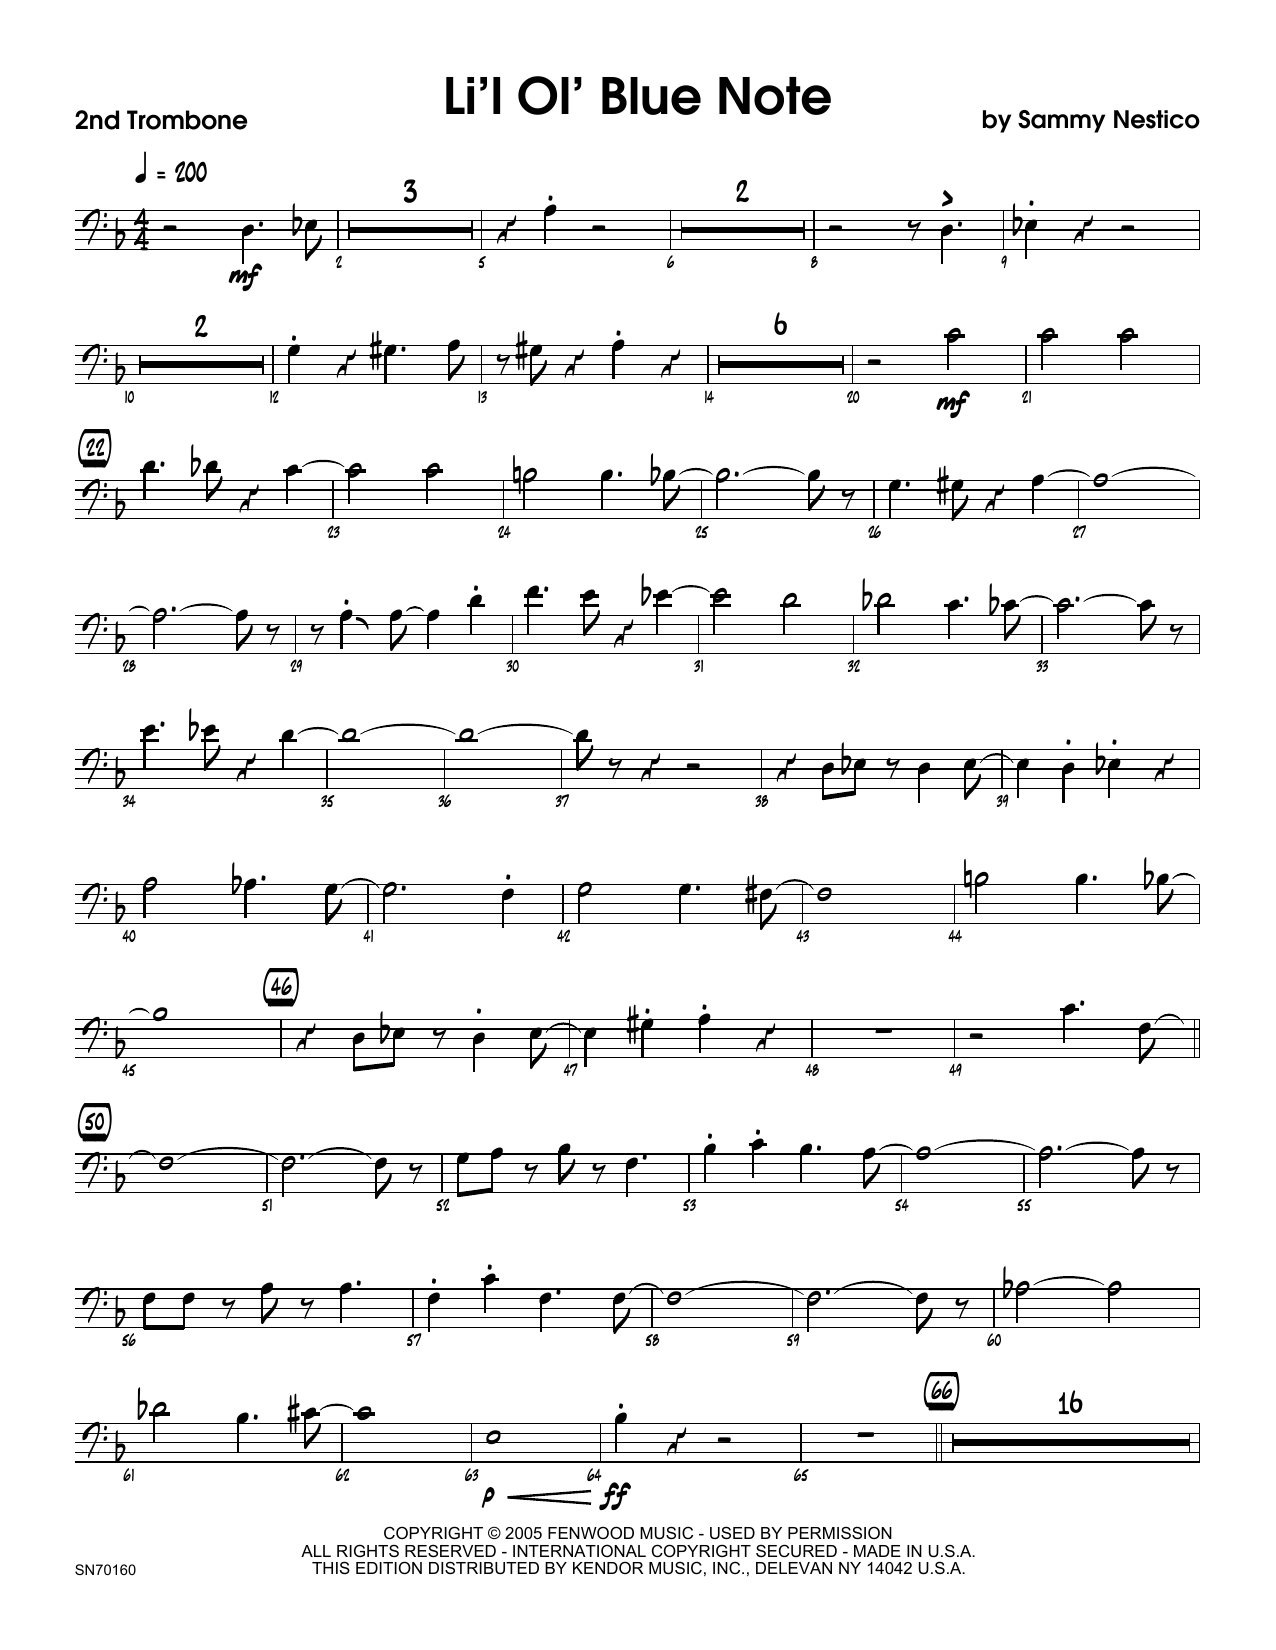 Li'l Ol' Blue Note - 2nd Trombone Sheet Music